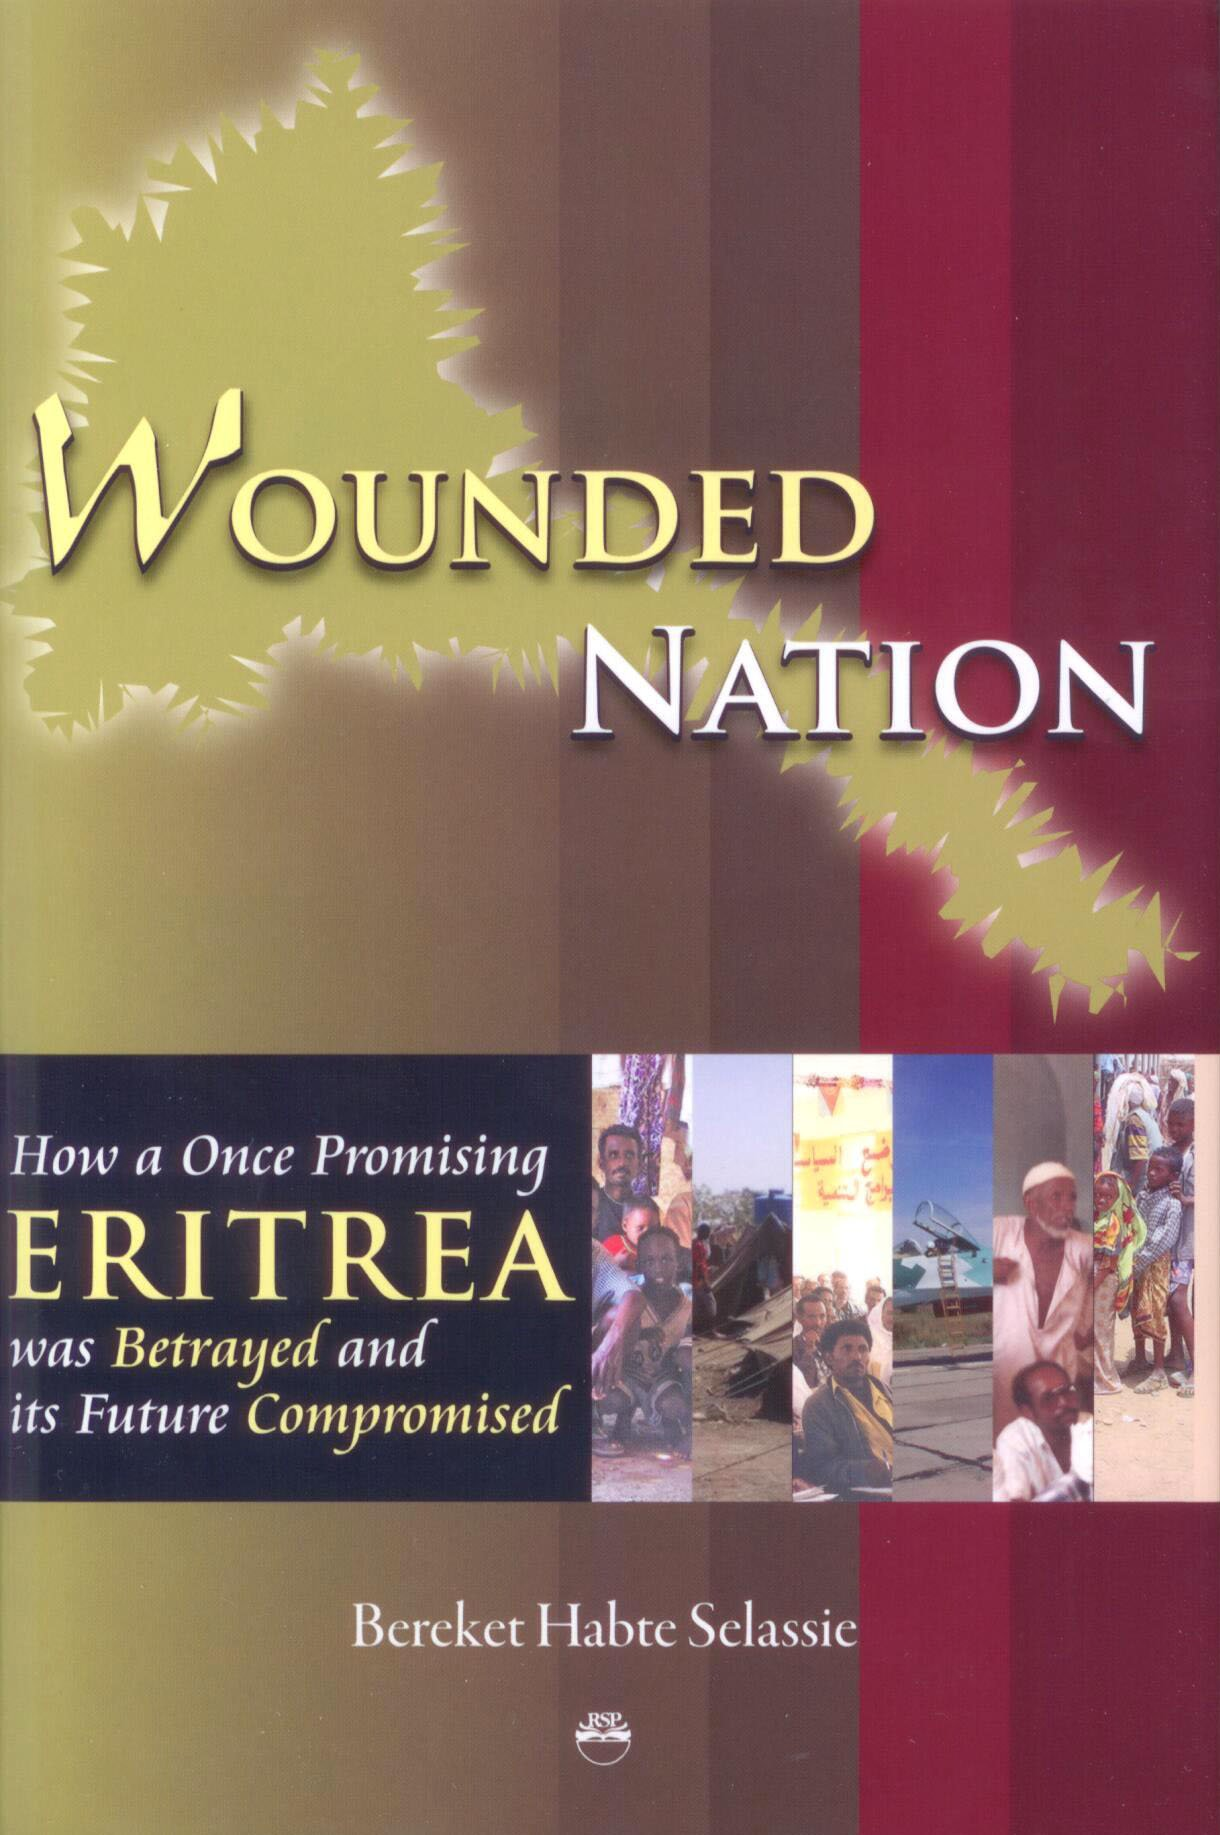 Wounded nation how a once promising eritrea was betrayed and its future compromised crown and the pen bereket habte selassie 9781569023402 amazon com